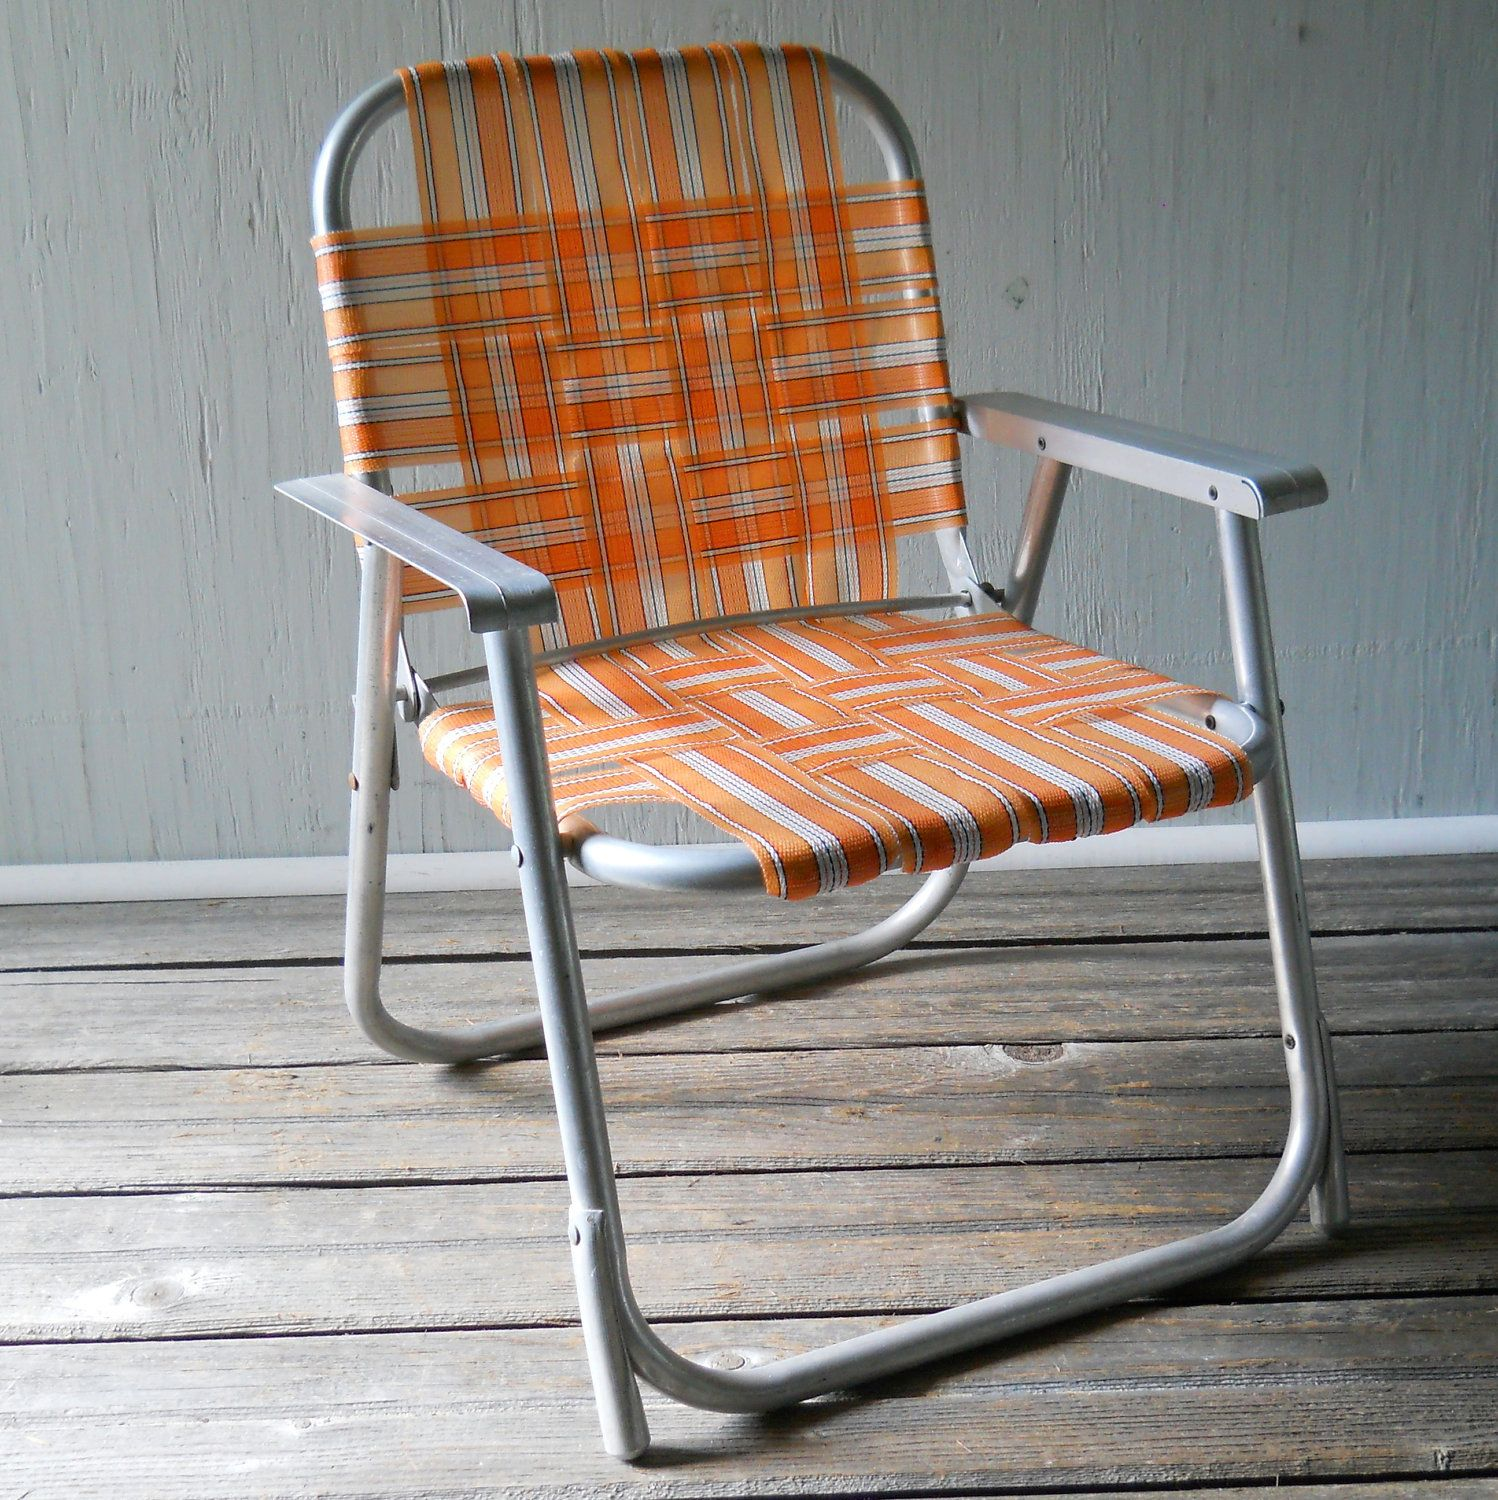 Aluminum folding chair - Vintage Folding Lawn Chair Child S Aluminum Folding Chair Orange